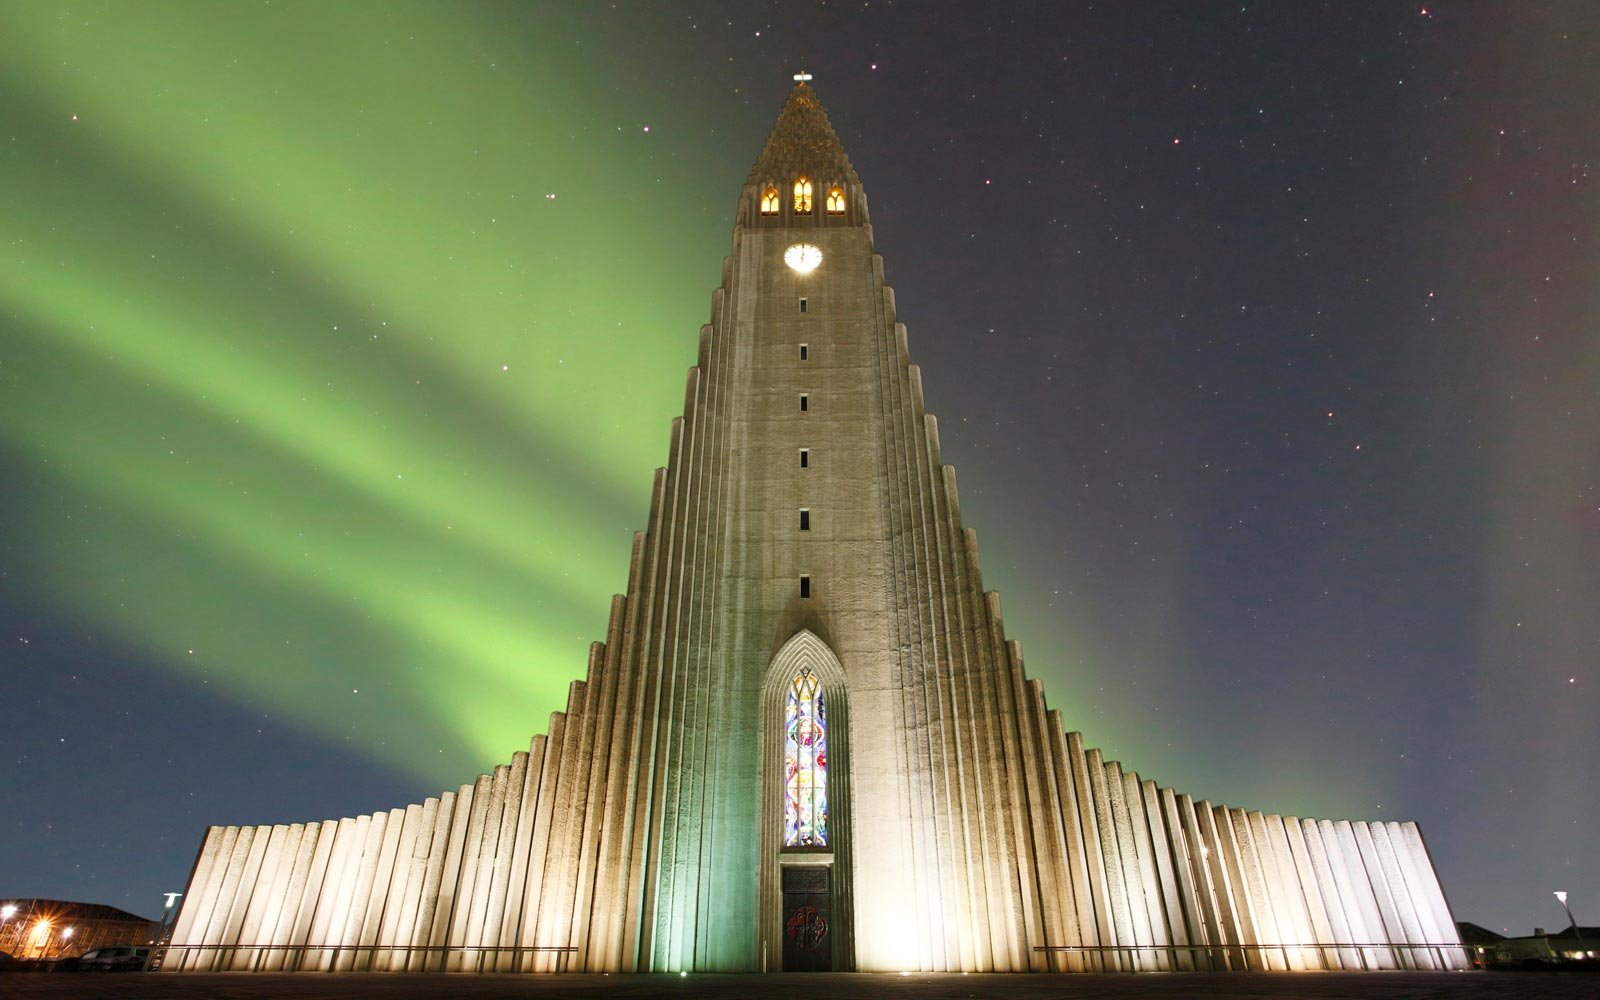 Iceland. Reykjavik. Cathedral under an aurora borealis (Northern Lights)